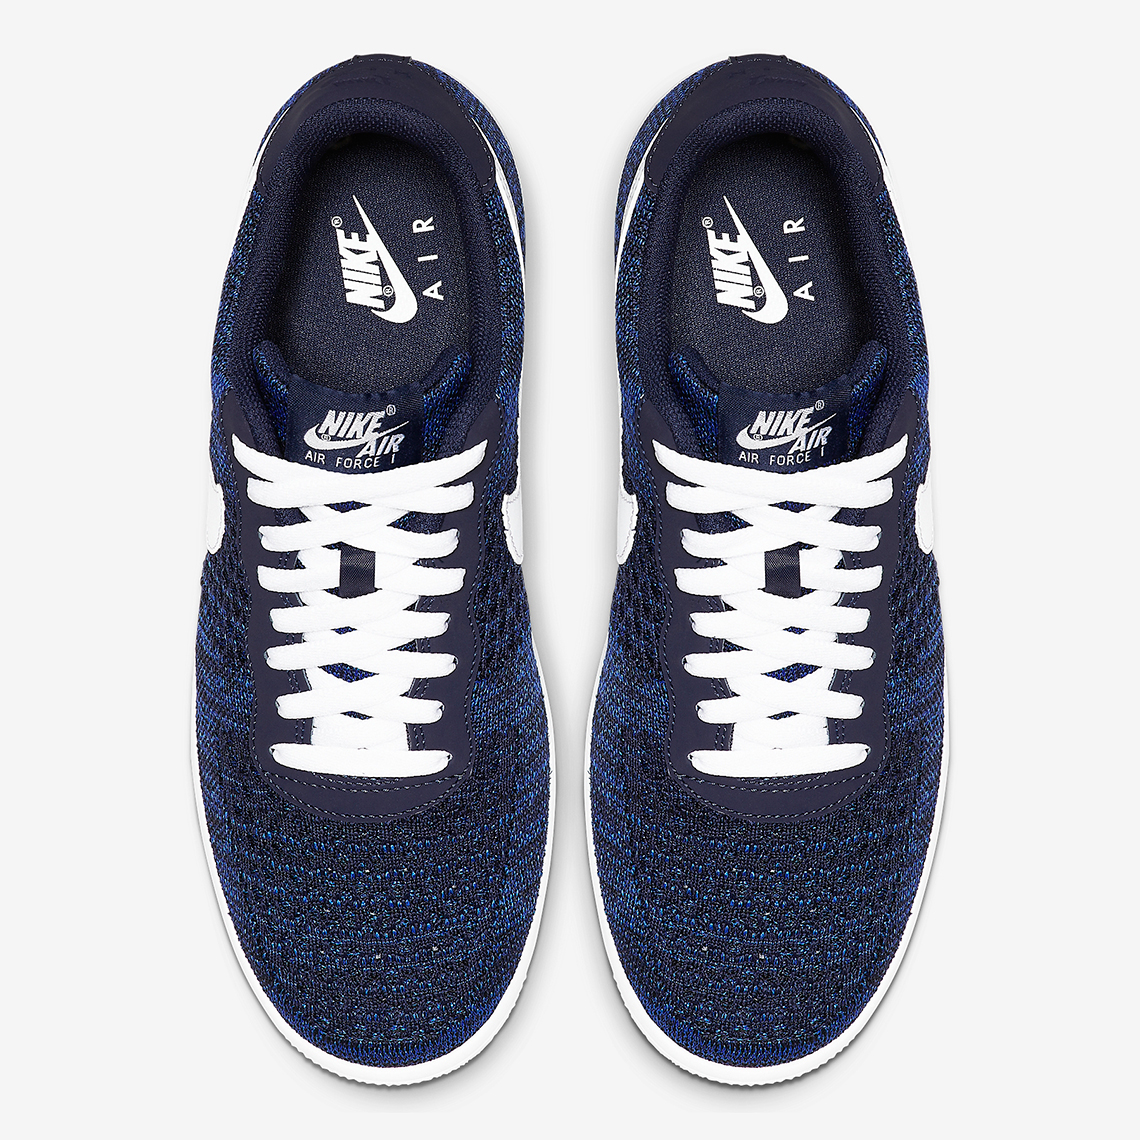 new product 907b1 306bb Nike Air Force 1 Flyknit 2.0 Release Date + Info   SneakerNews.com